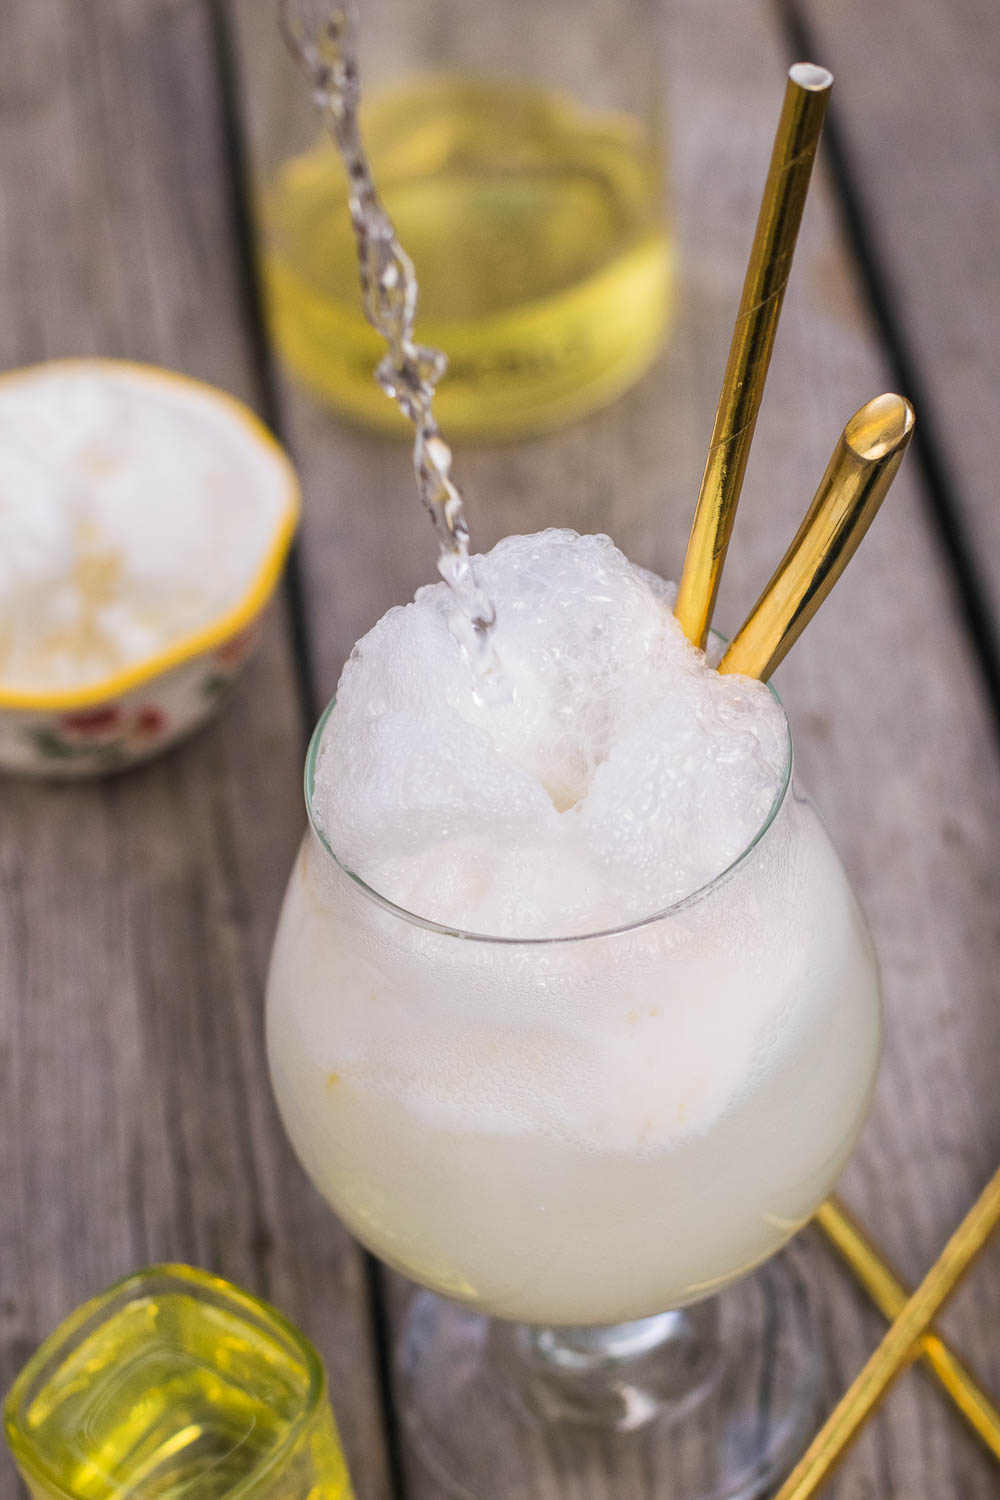 Enjoy the dog days of summer with a deliciously bubbly, wonderfully refreshing frozen treat of tart sherbet melting into sweet lemon liqueur! #limoncello #seltzer #dessert | mountaincravings.com